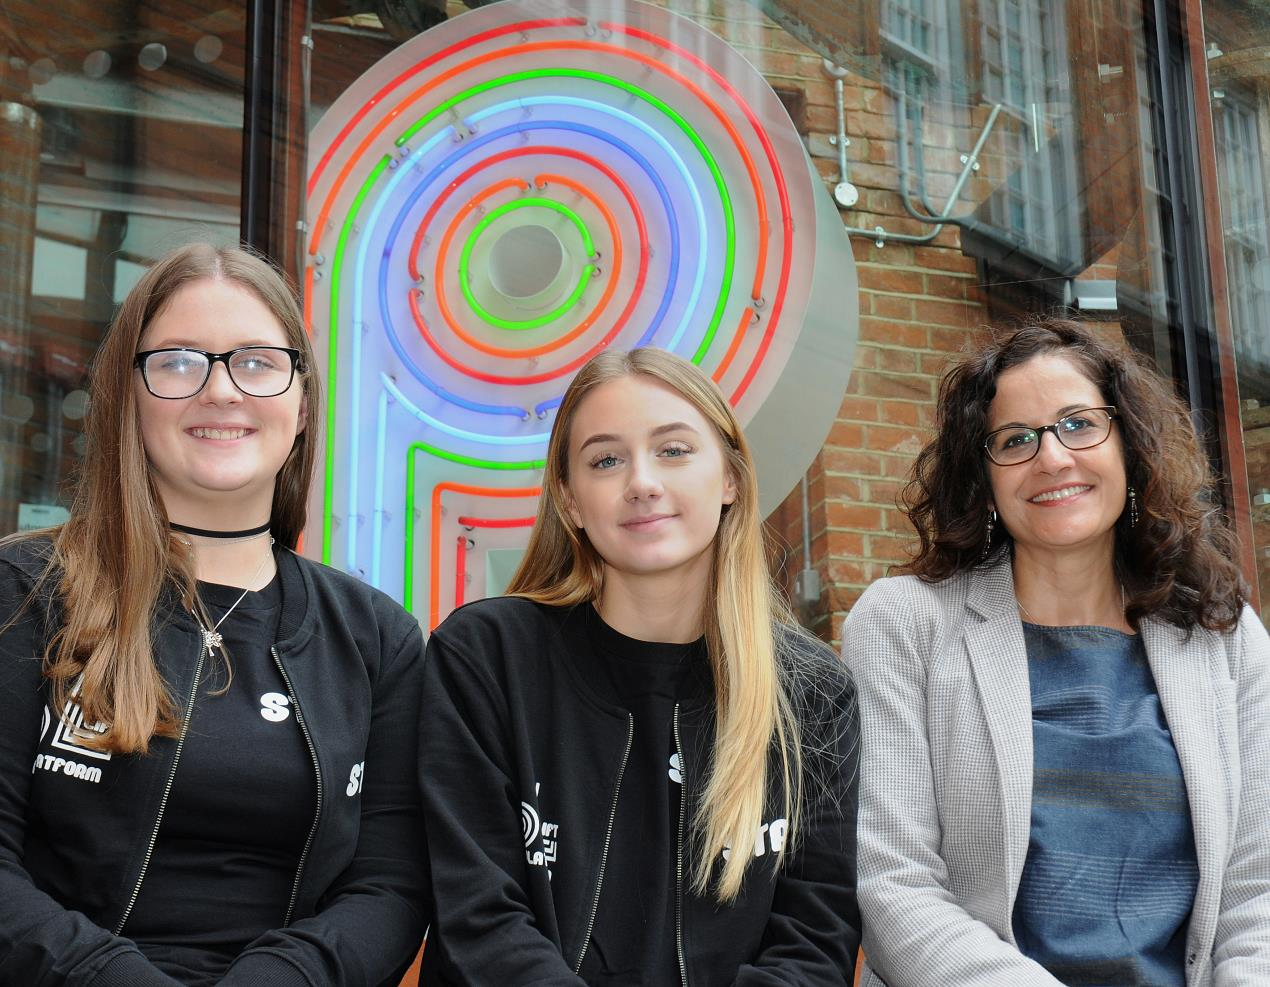 Cllr_Asima_Shaikh%2c_executive_member_for_economic_development%2c_met_Isledon%27s_latest_apprentices_at_Platform_youth_hub_-_Holly_Coleman_(wearing_glasses)_and_Sydney_Milner.